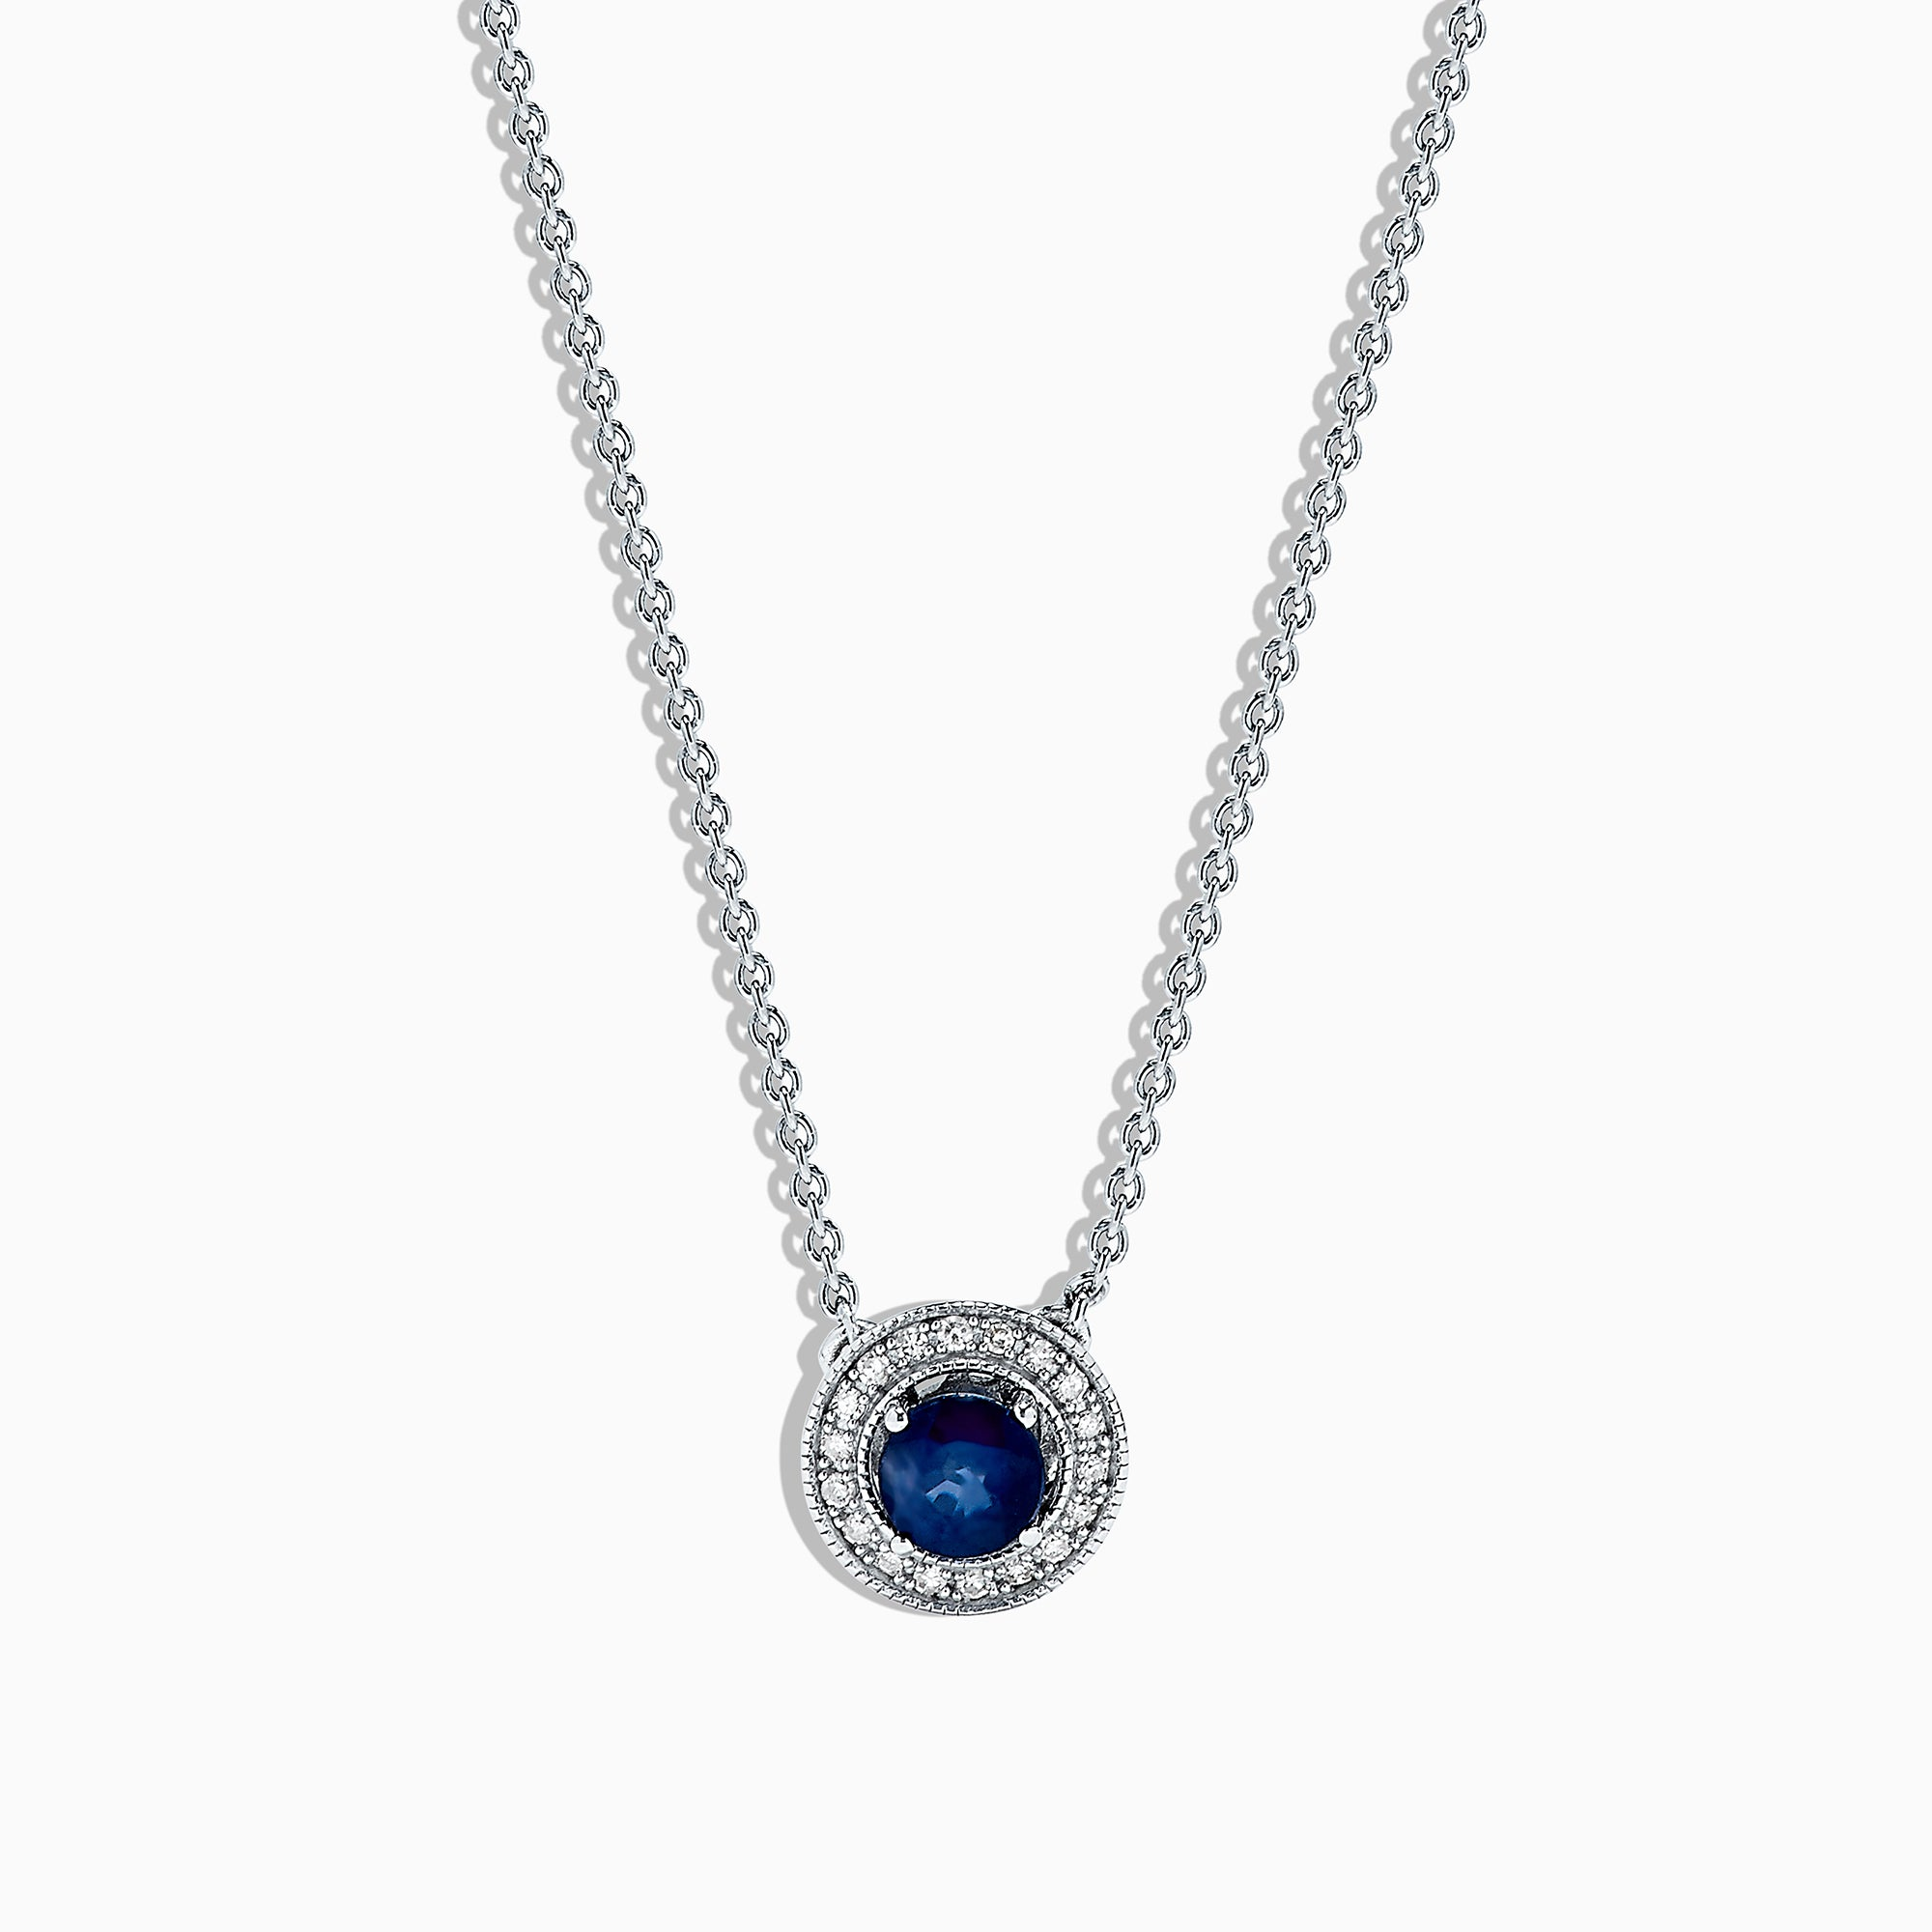 Effy 925 Sterling Silver Sapphire and Diamond Necklace, 0.66 TCW